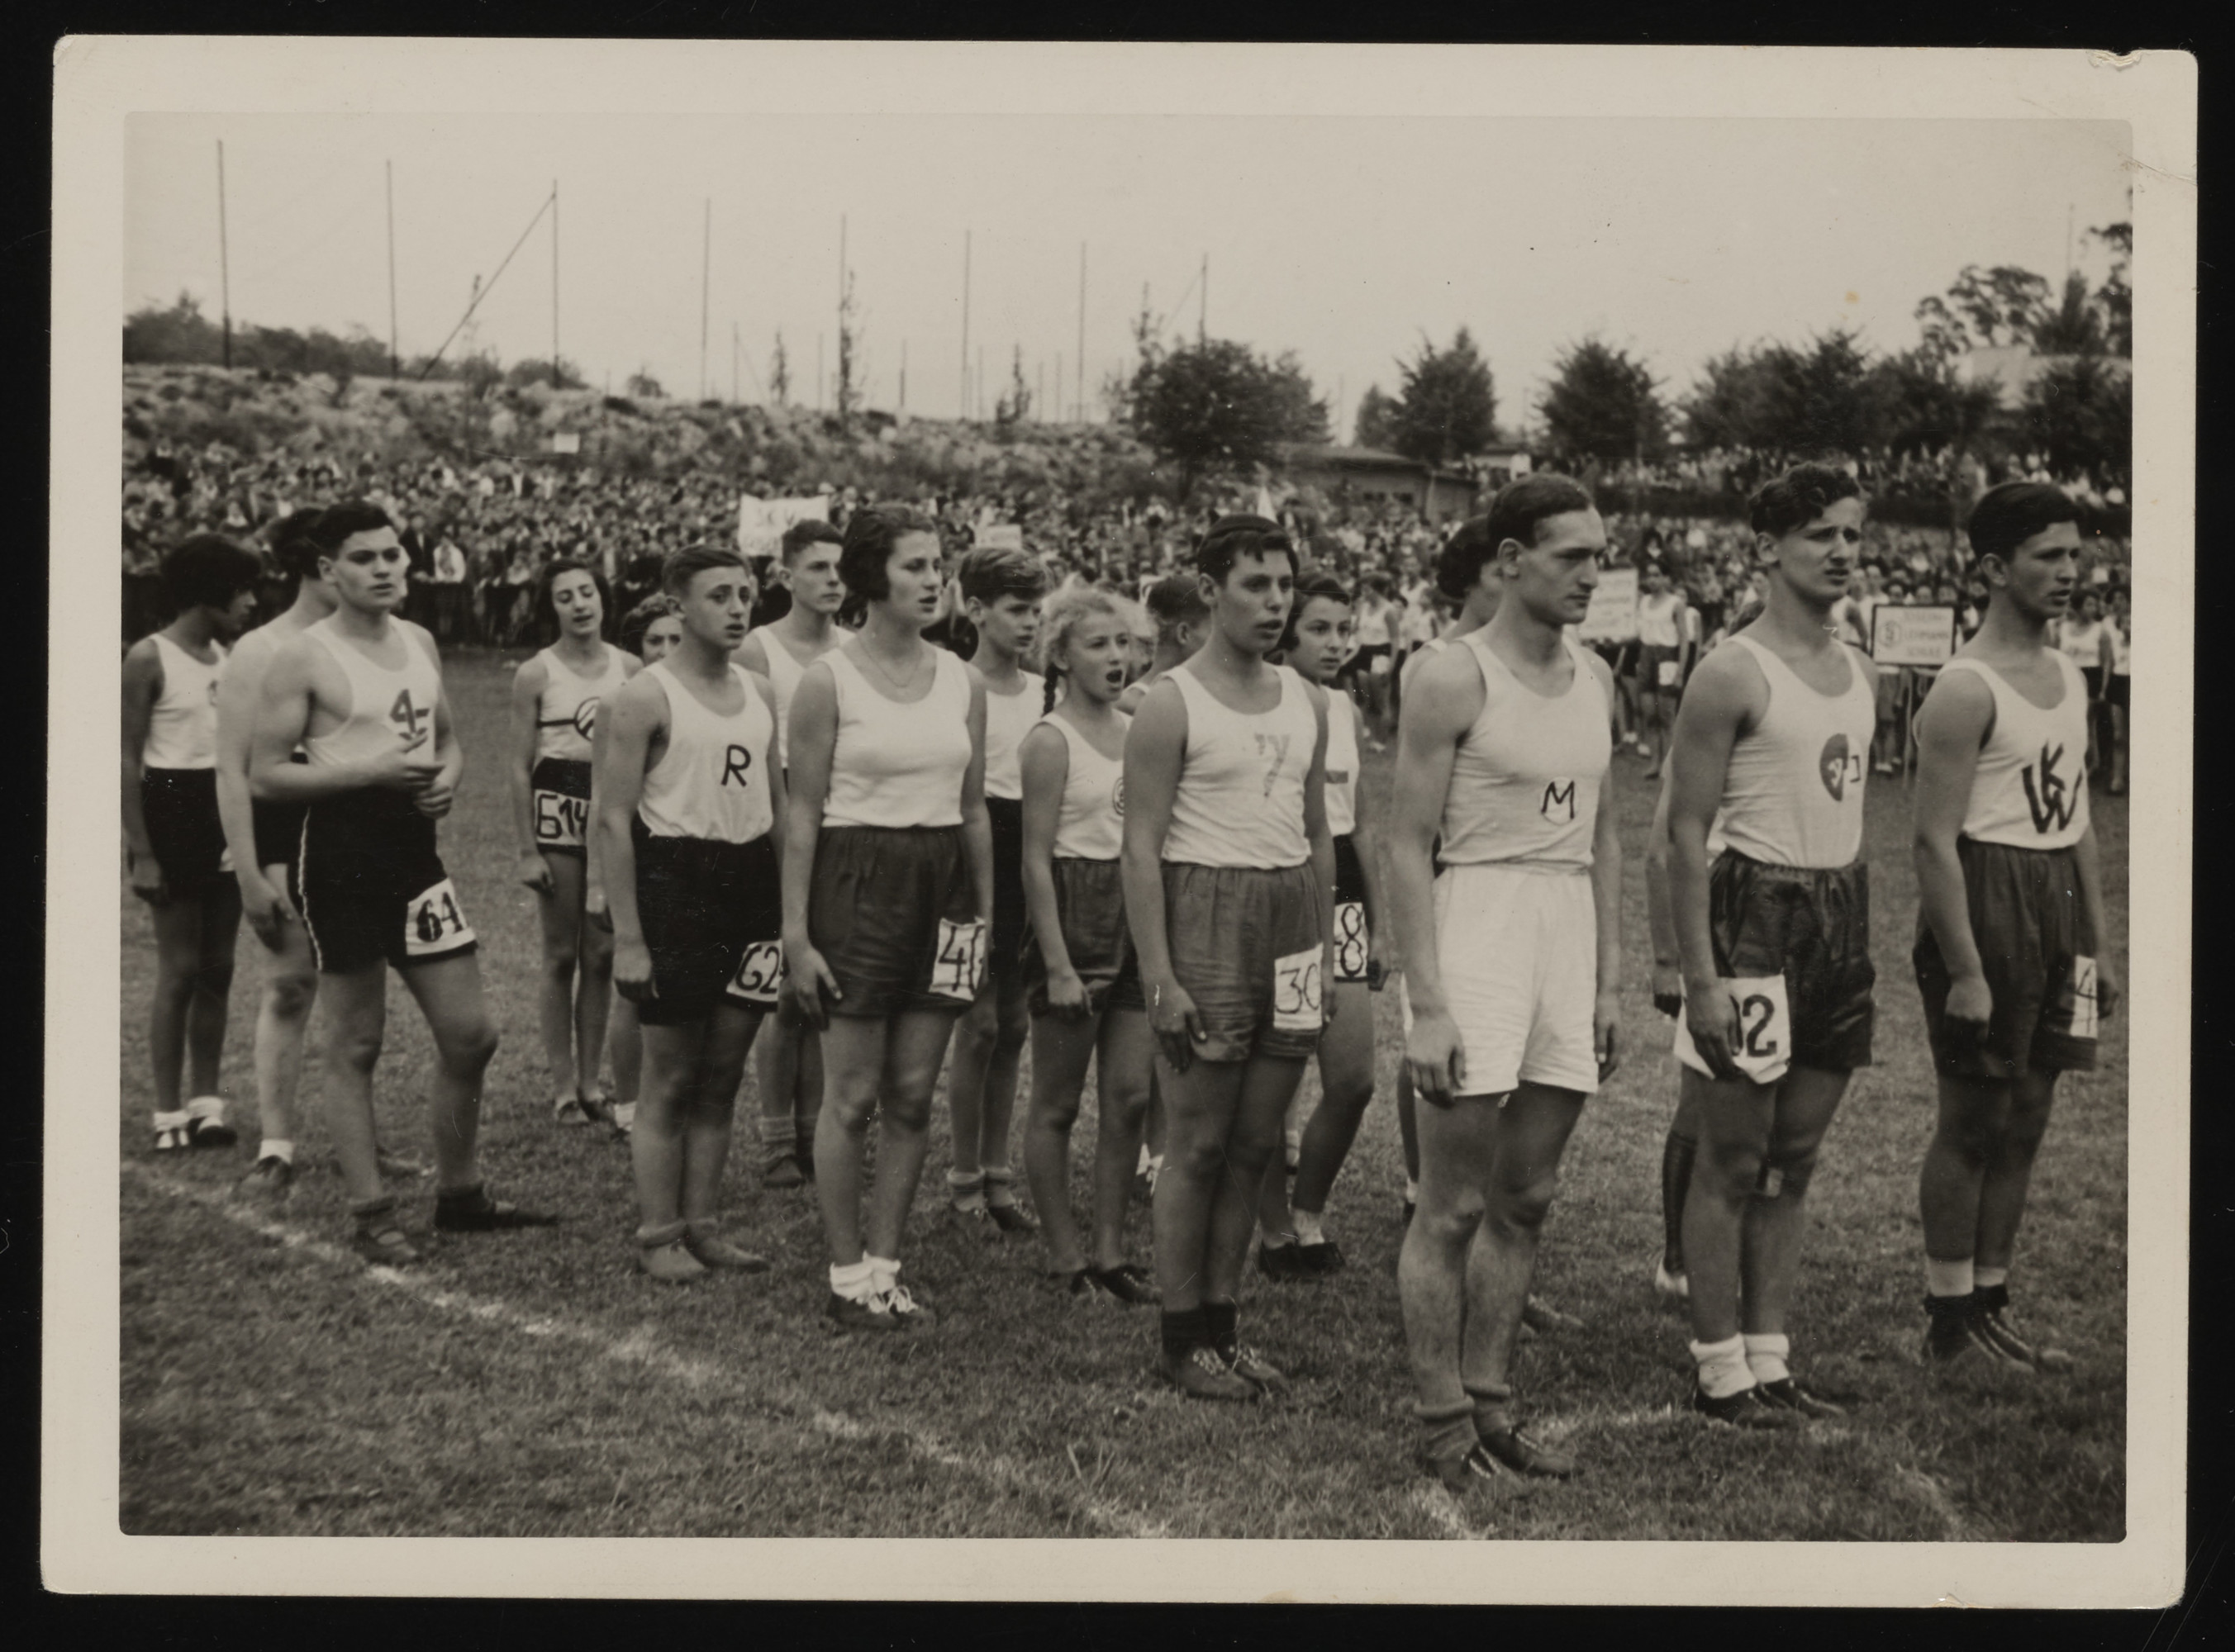 Students from various Jewish schools in Berlin gather to sing Hatikva at a large track and field event.